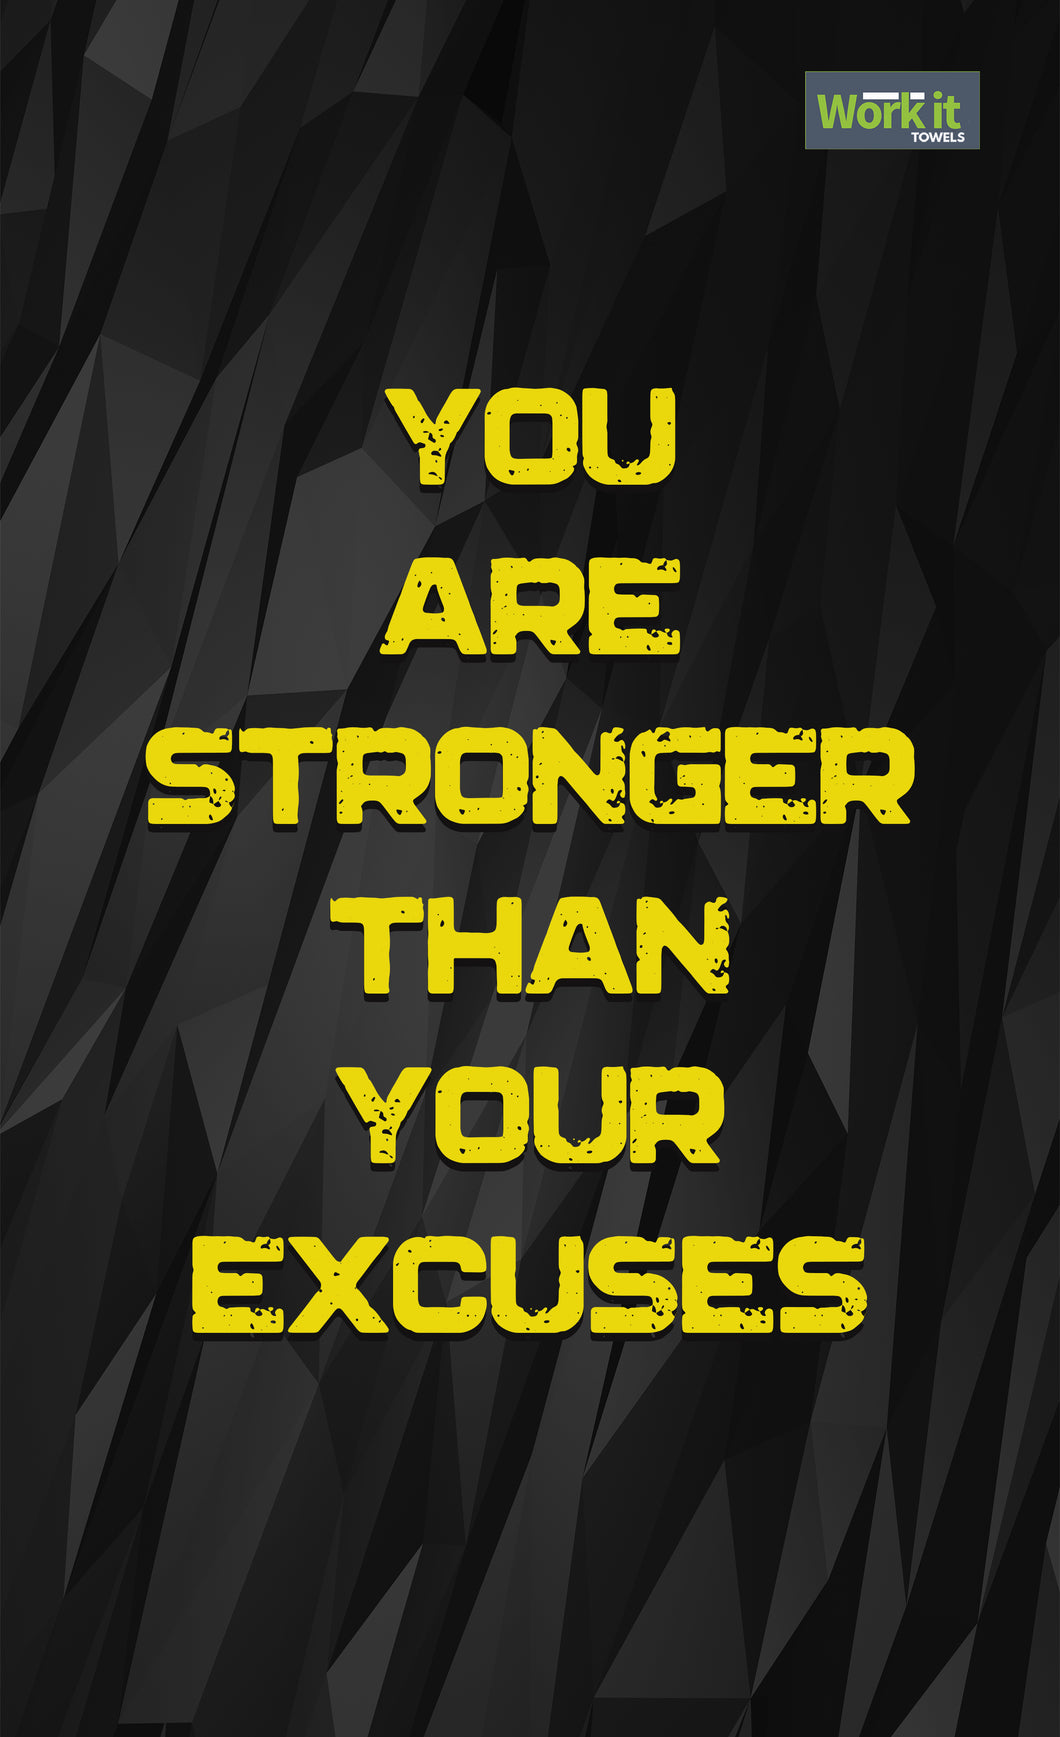 Stronger Than Your Excuses - work it towels